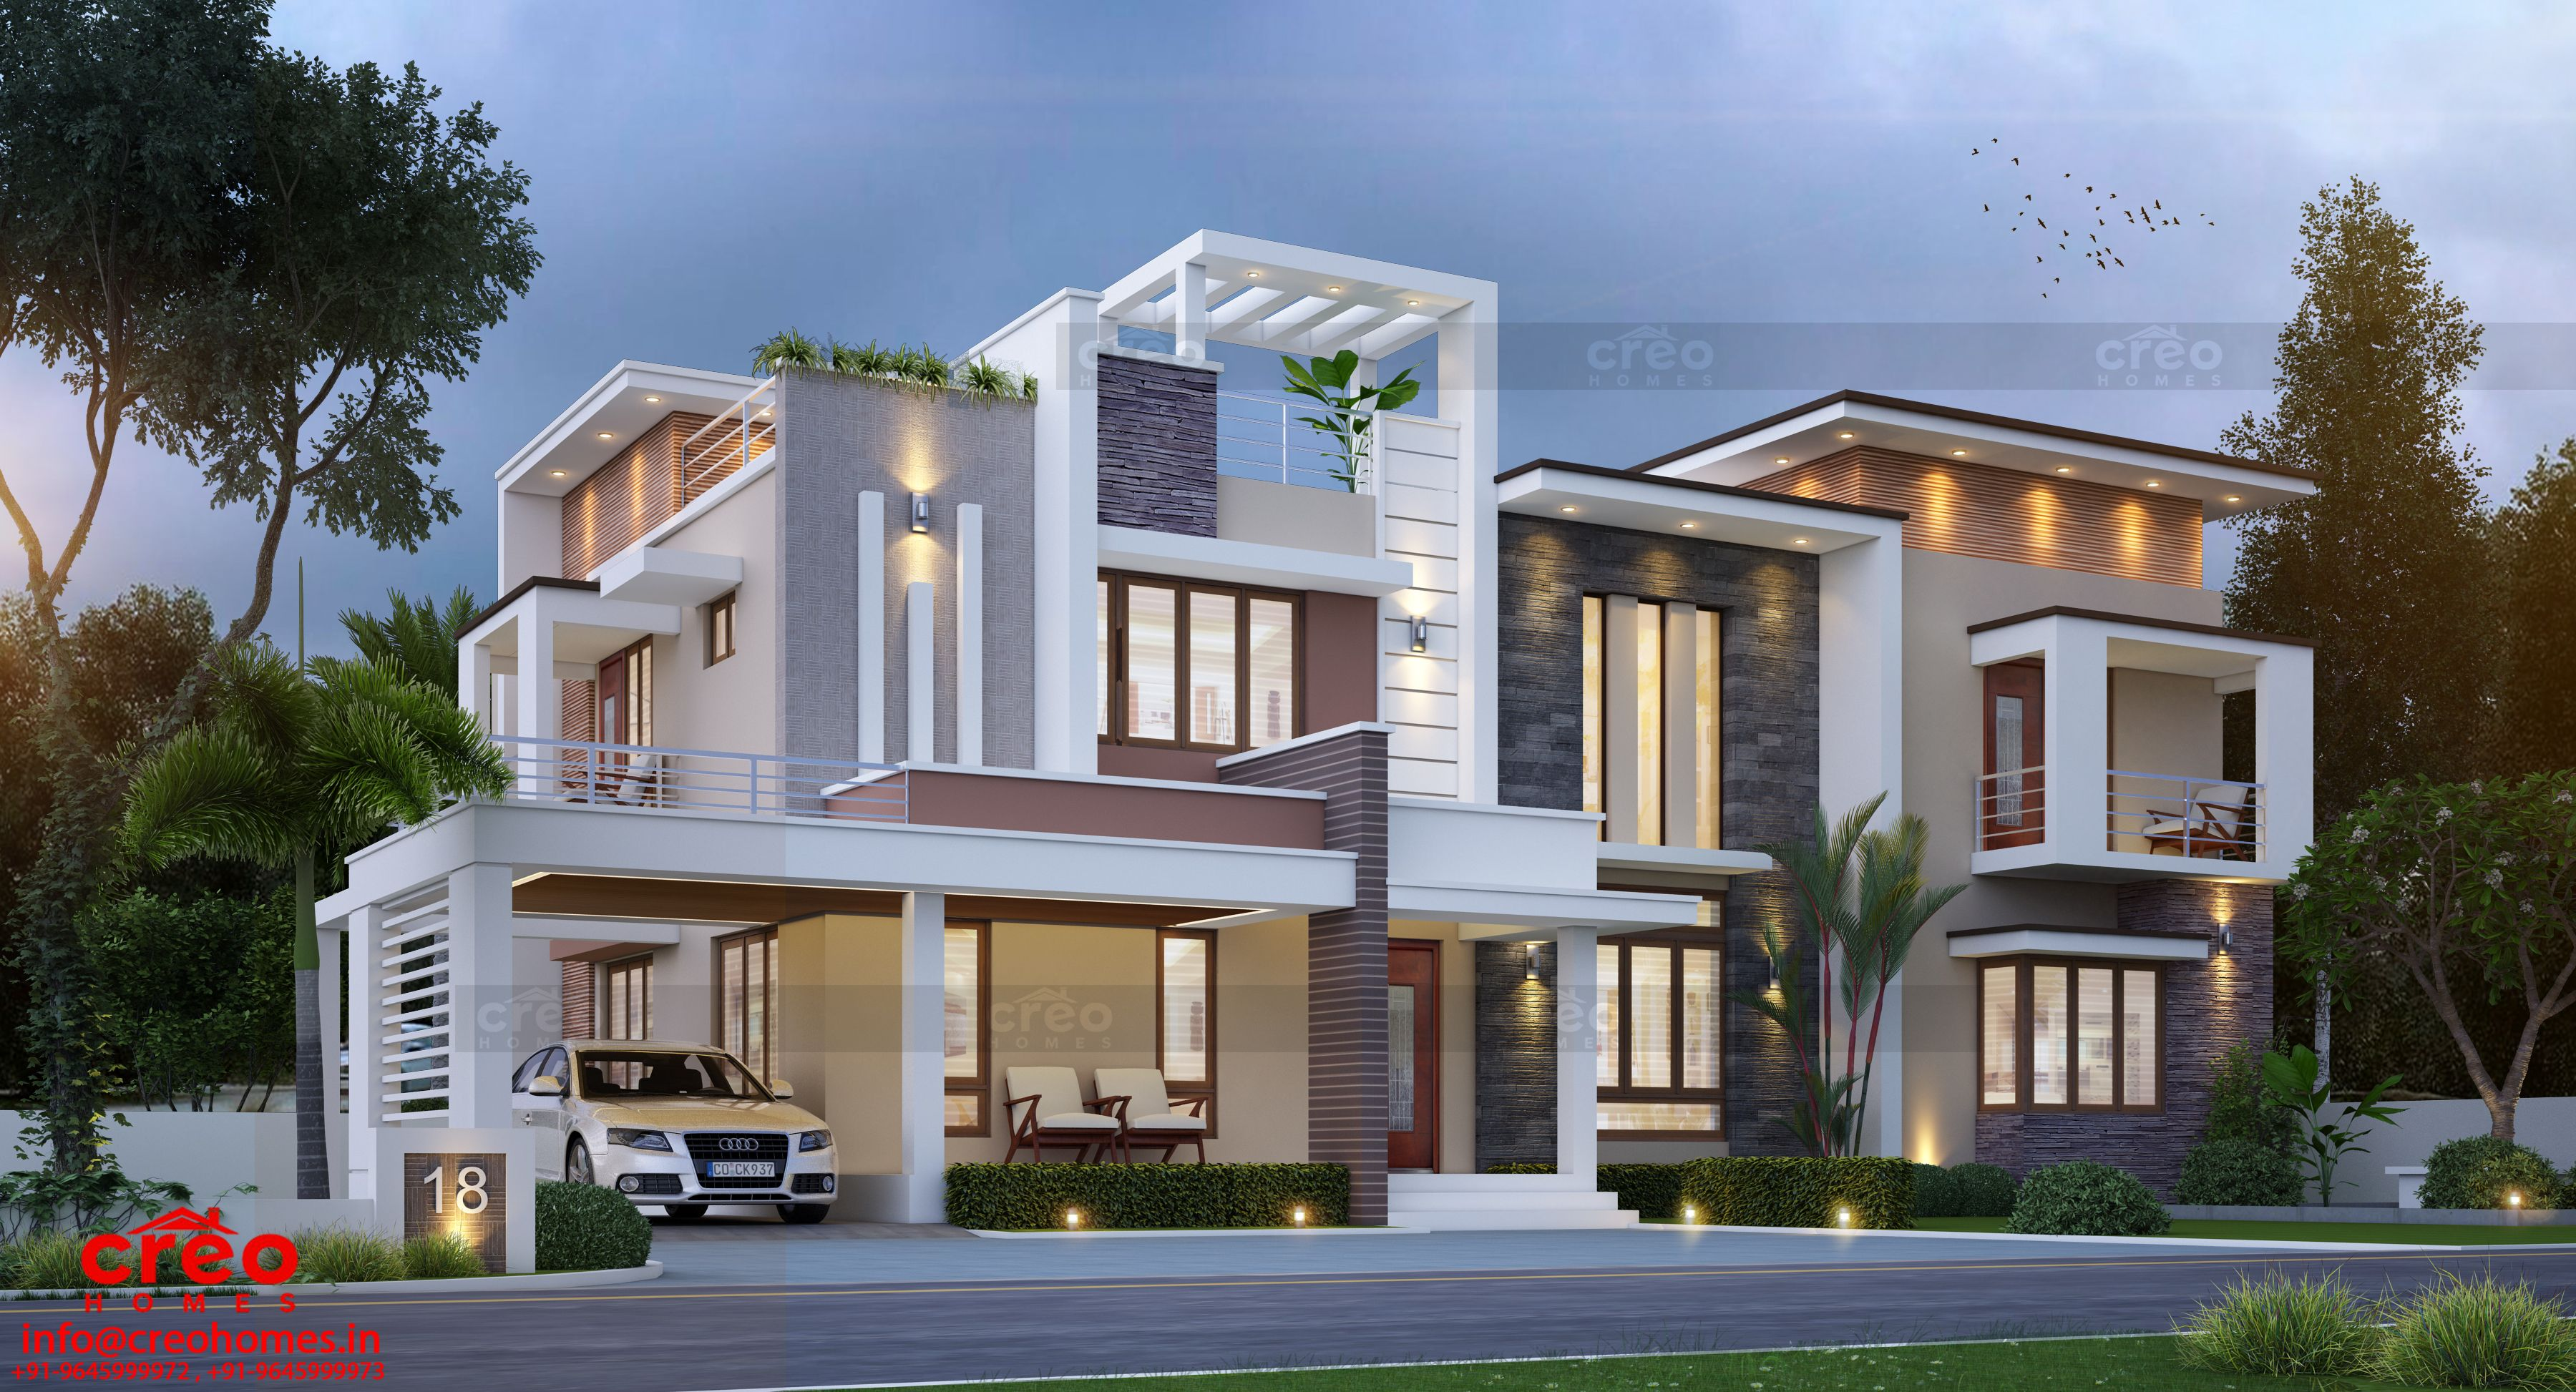 Creo Homes Helps You Build A Beautiful Home That Matches Your